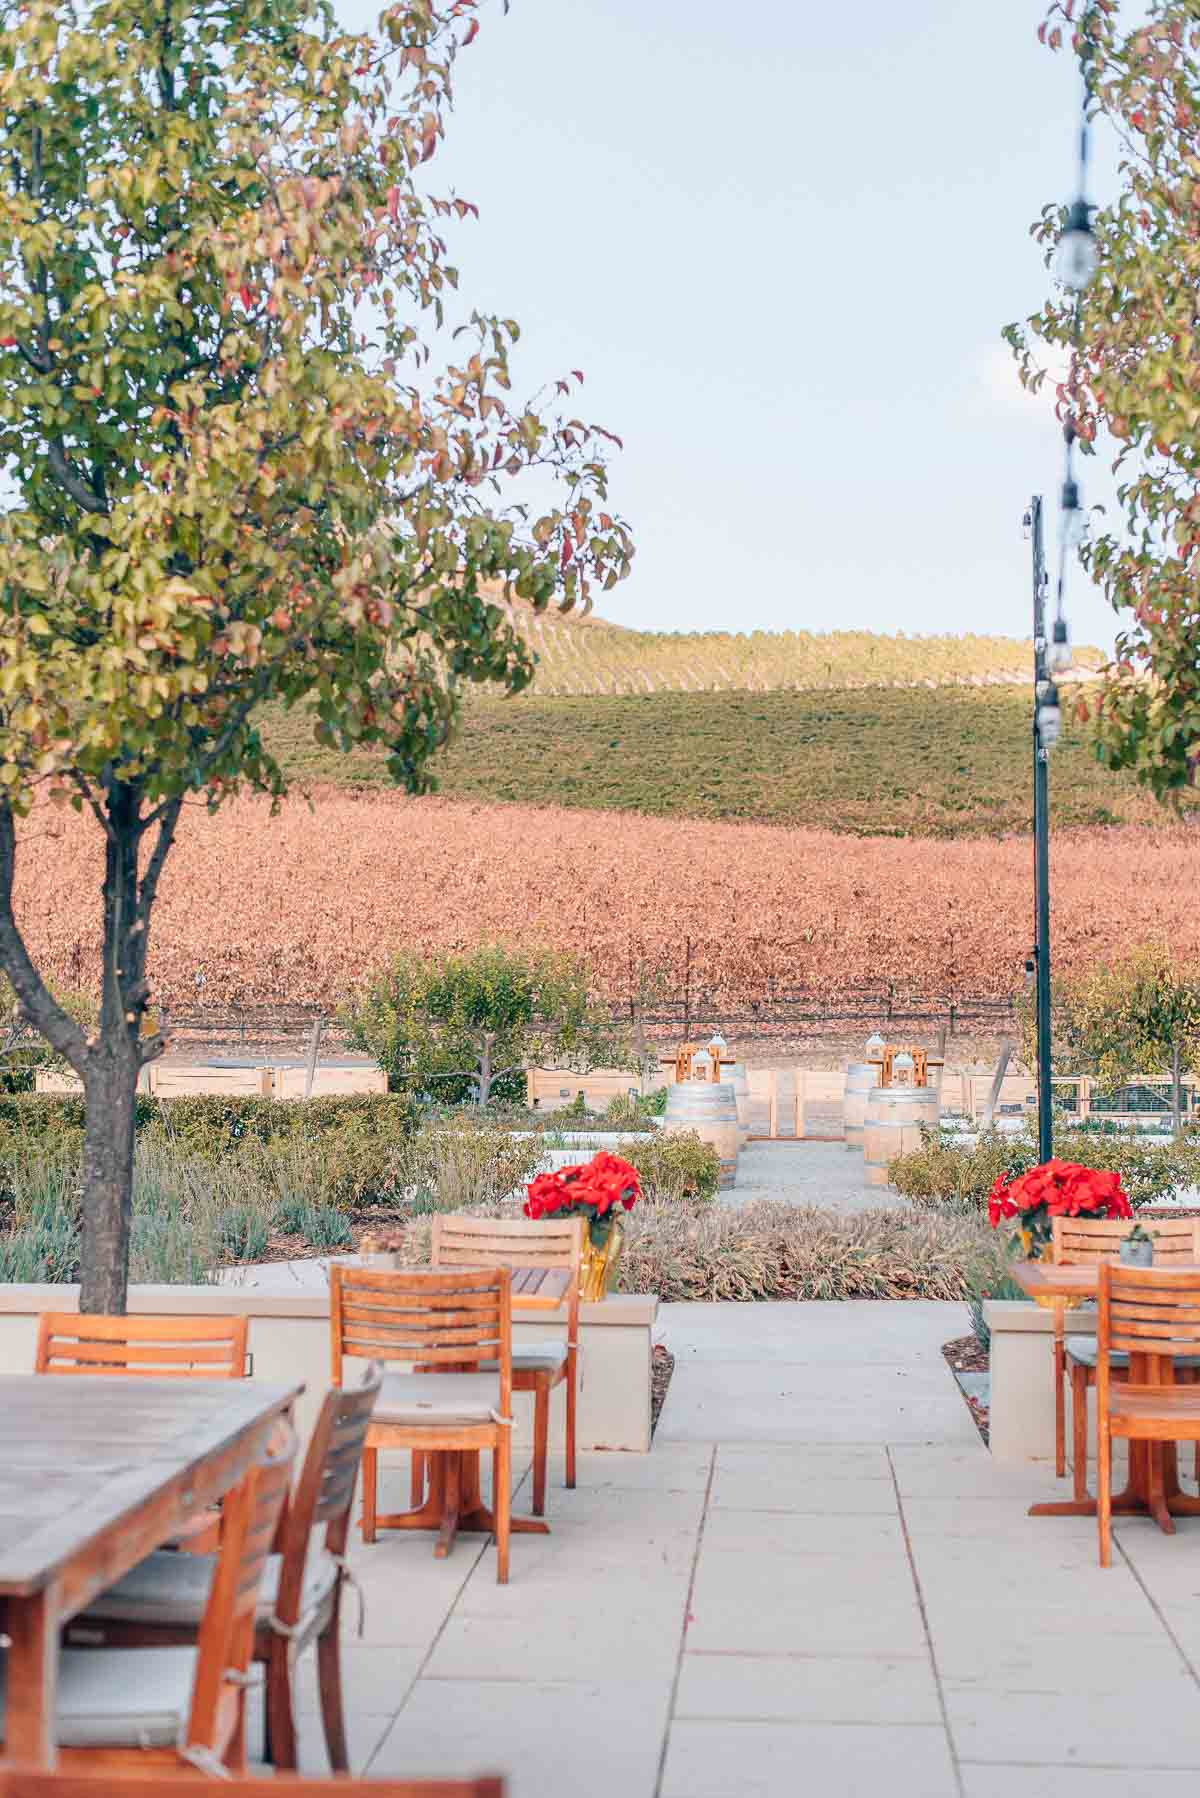 Visiting Justin Winery in Paso Robles, California